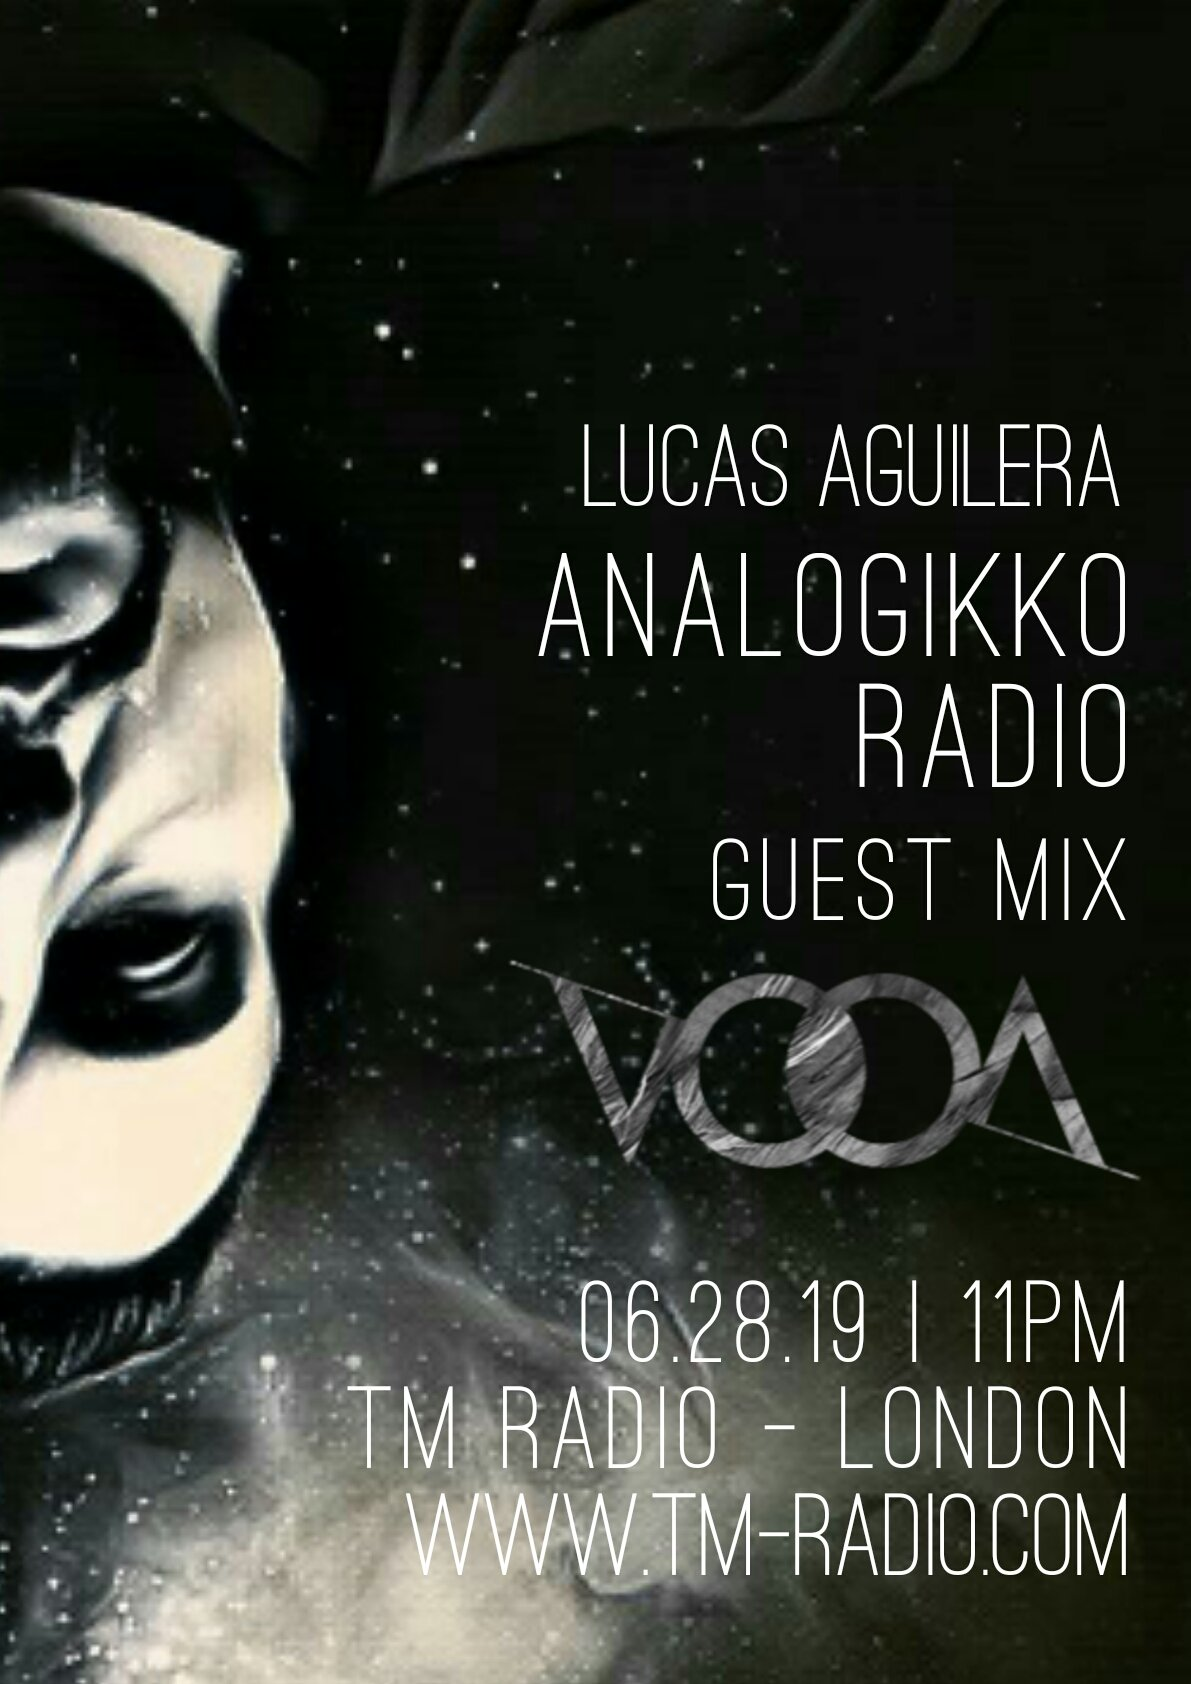 ANALOGIKKO RADIO BY LUCAS AGUILERA - VOOA - GUEST MIX - TM RADIO - Episode 068 (from June 28th, 2019)